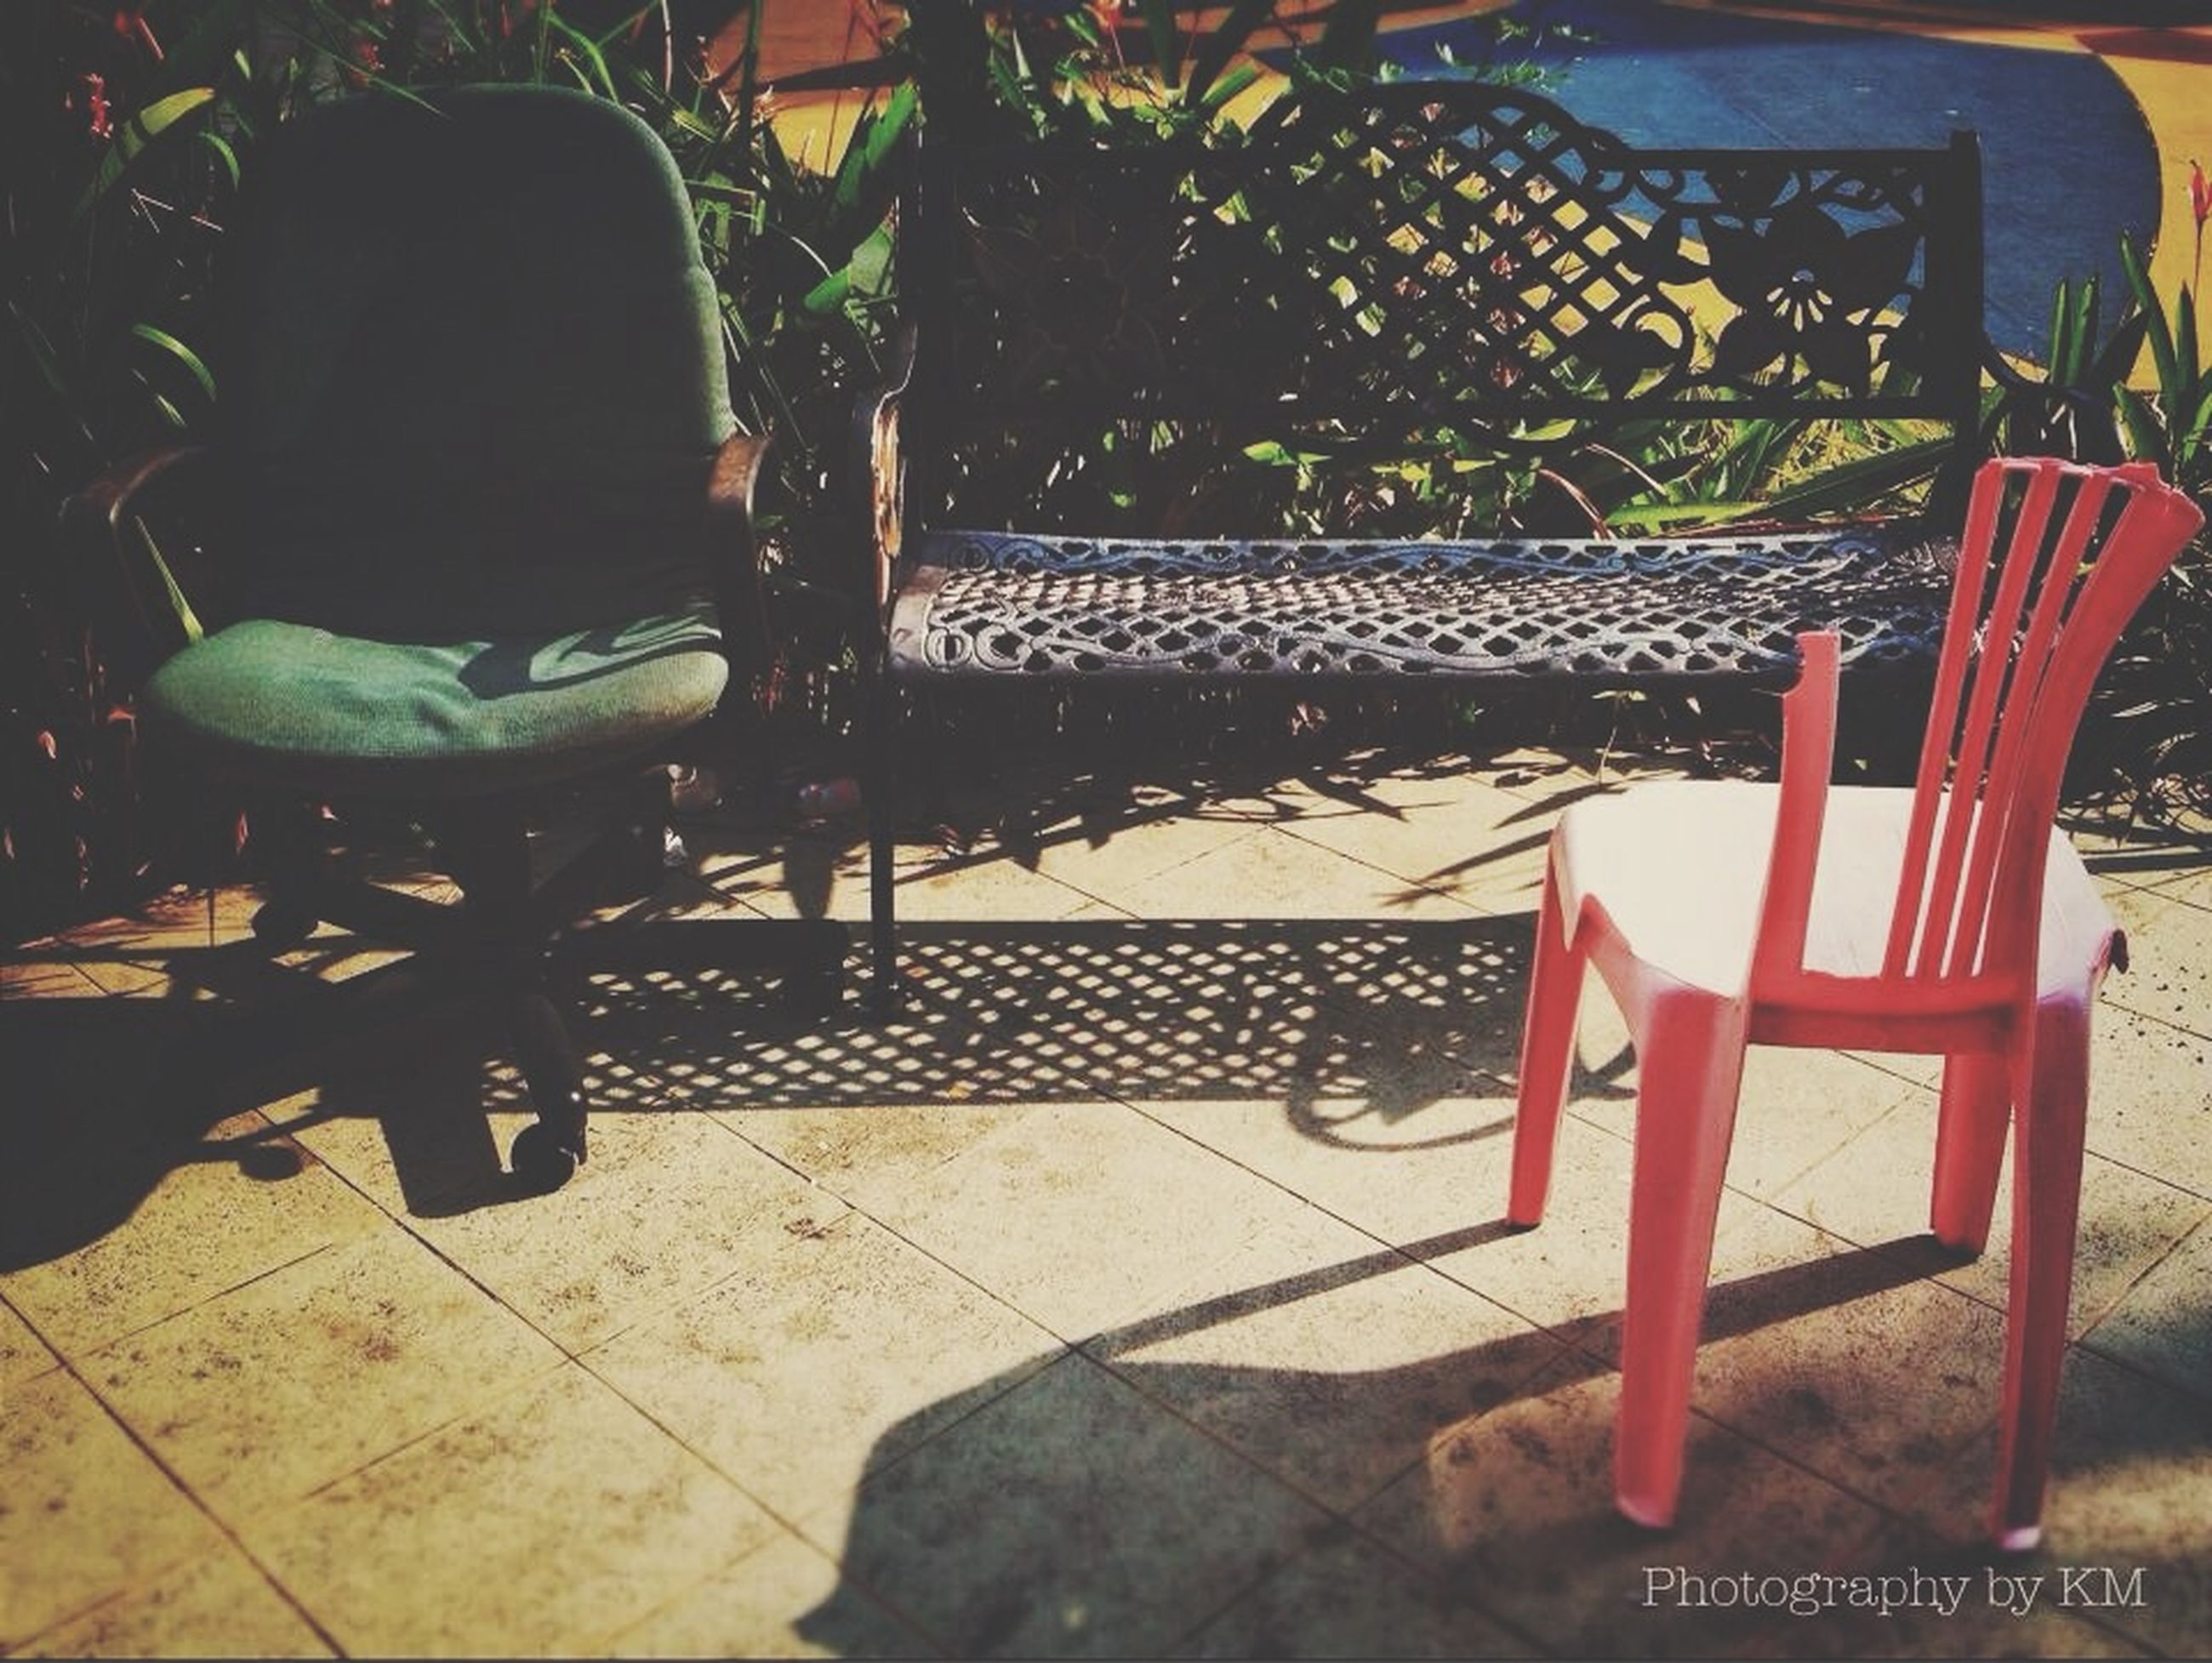 chair, table, potted plant, seat, absence, empty, plant, bench, furniture, sunlight, restaurant, day, relaxation, sidewalk cafe, high angle view, front or back yard, growth, outdoors, shadow, no people